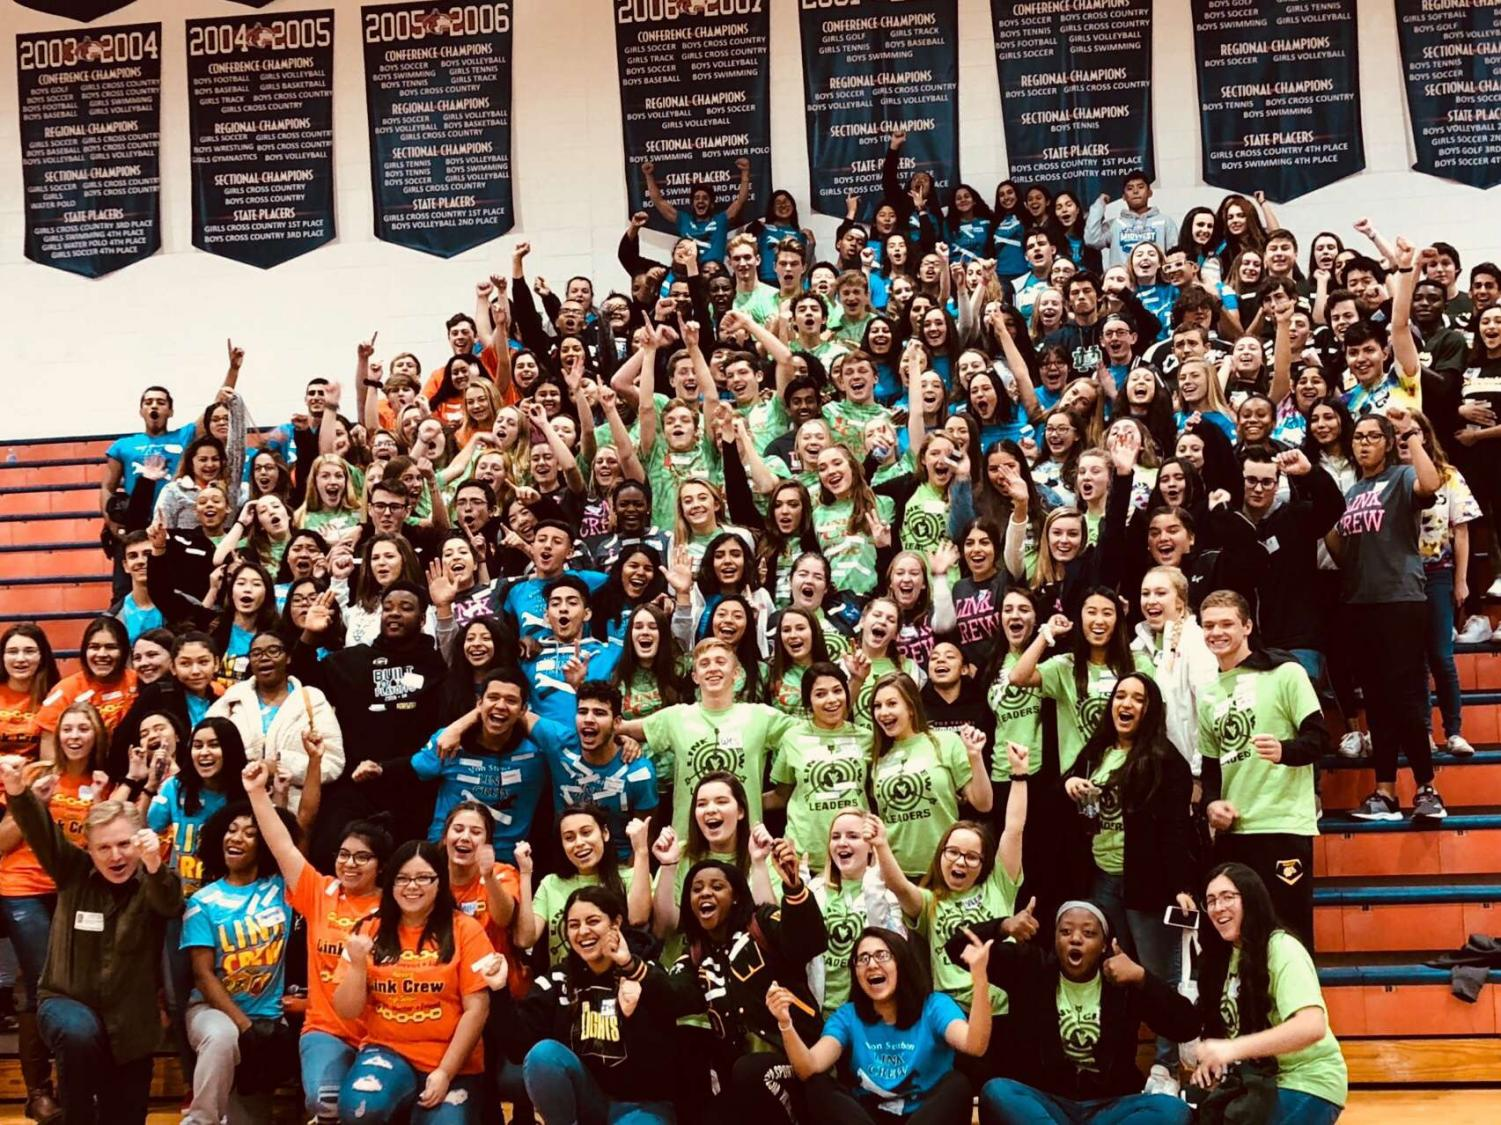 Link Crew conference at Naperville North High School on October 30th, where link crew leaders from surrounding schools came together to discuss ways of improving the program. Photo courtesy of Jeana Parry.